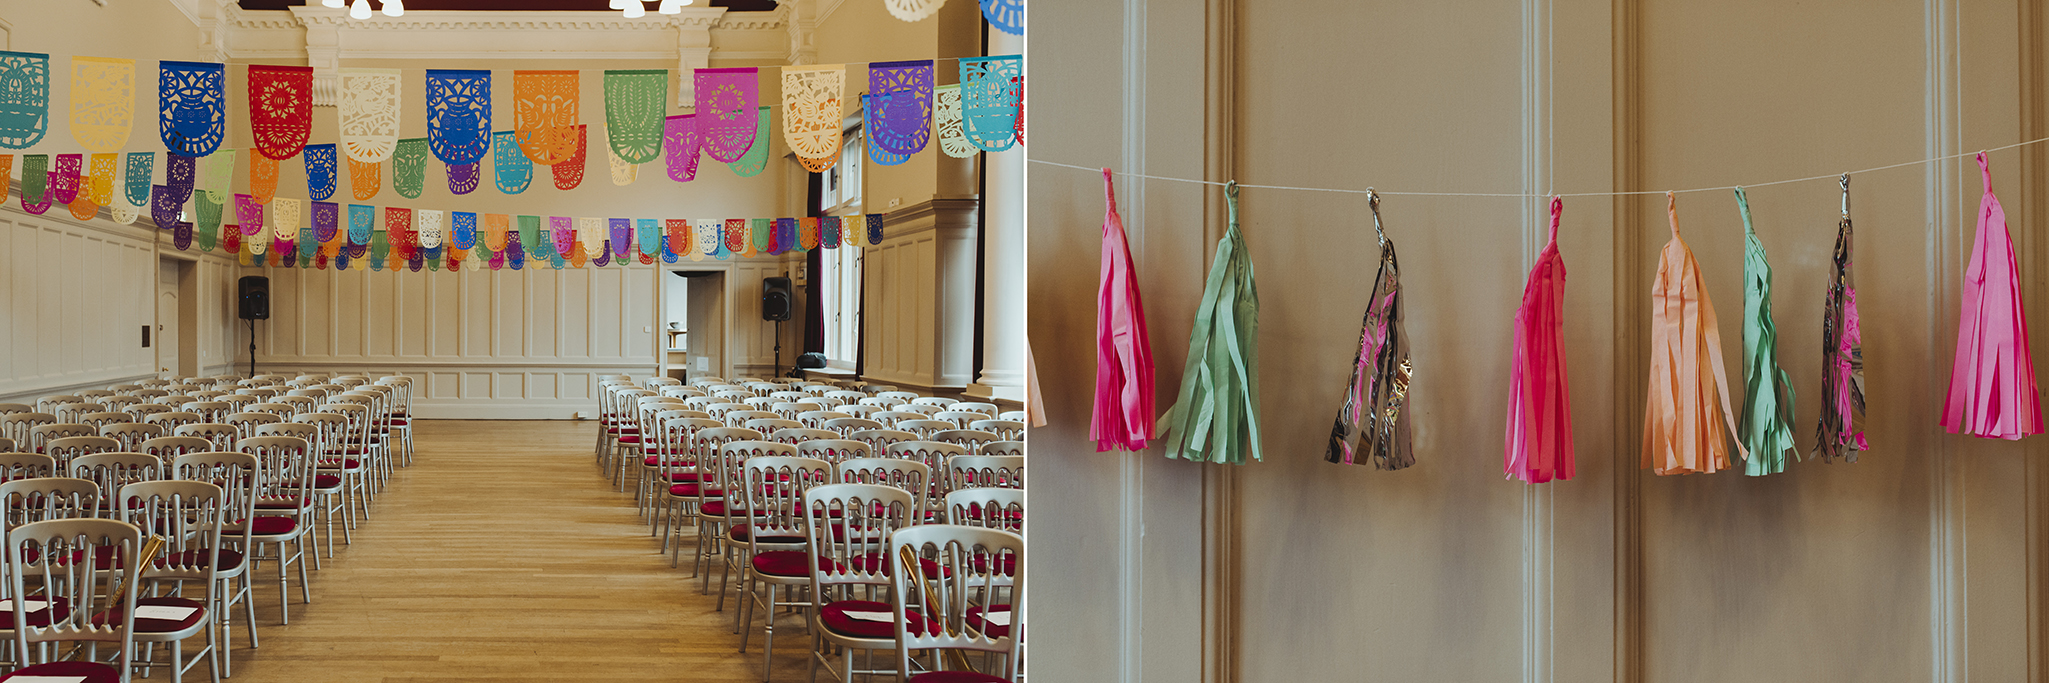 Summerhall and The Biscuit Factory Wedding 19.jpg